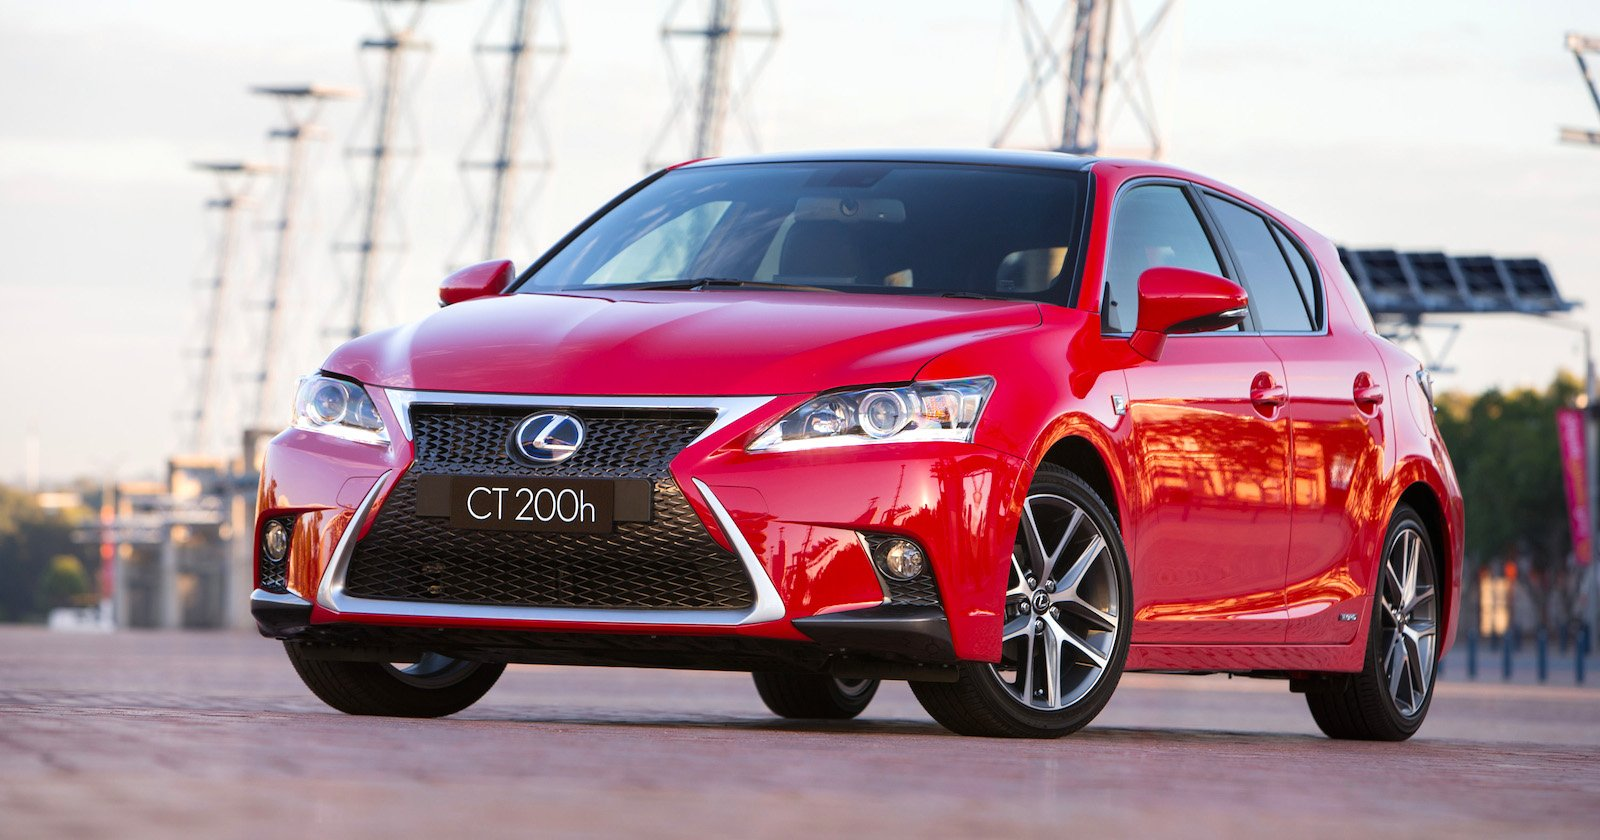 Lexus Ct Second Gen Small Car Could Gain Non Hybrid